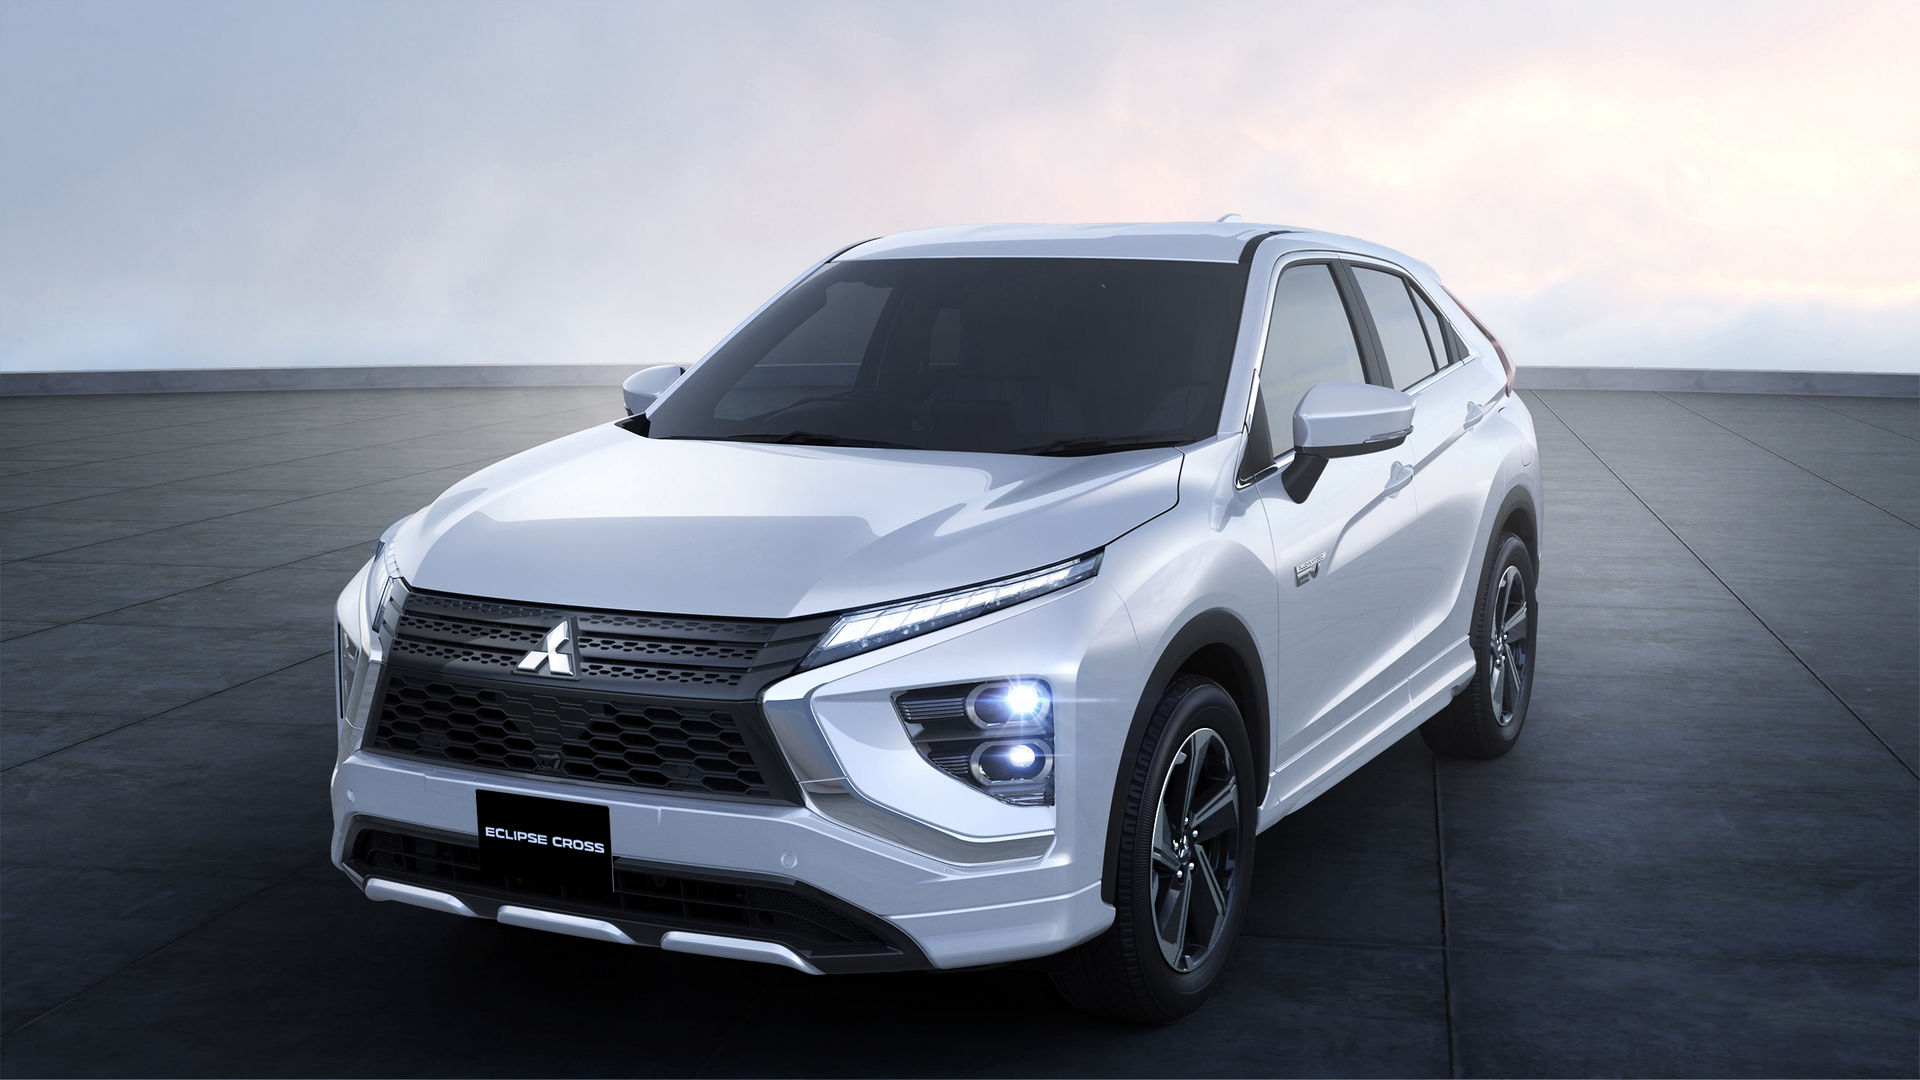 Mitsubishi-Eclipse-Cross-Facelift-5-4